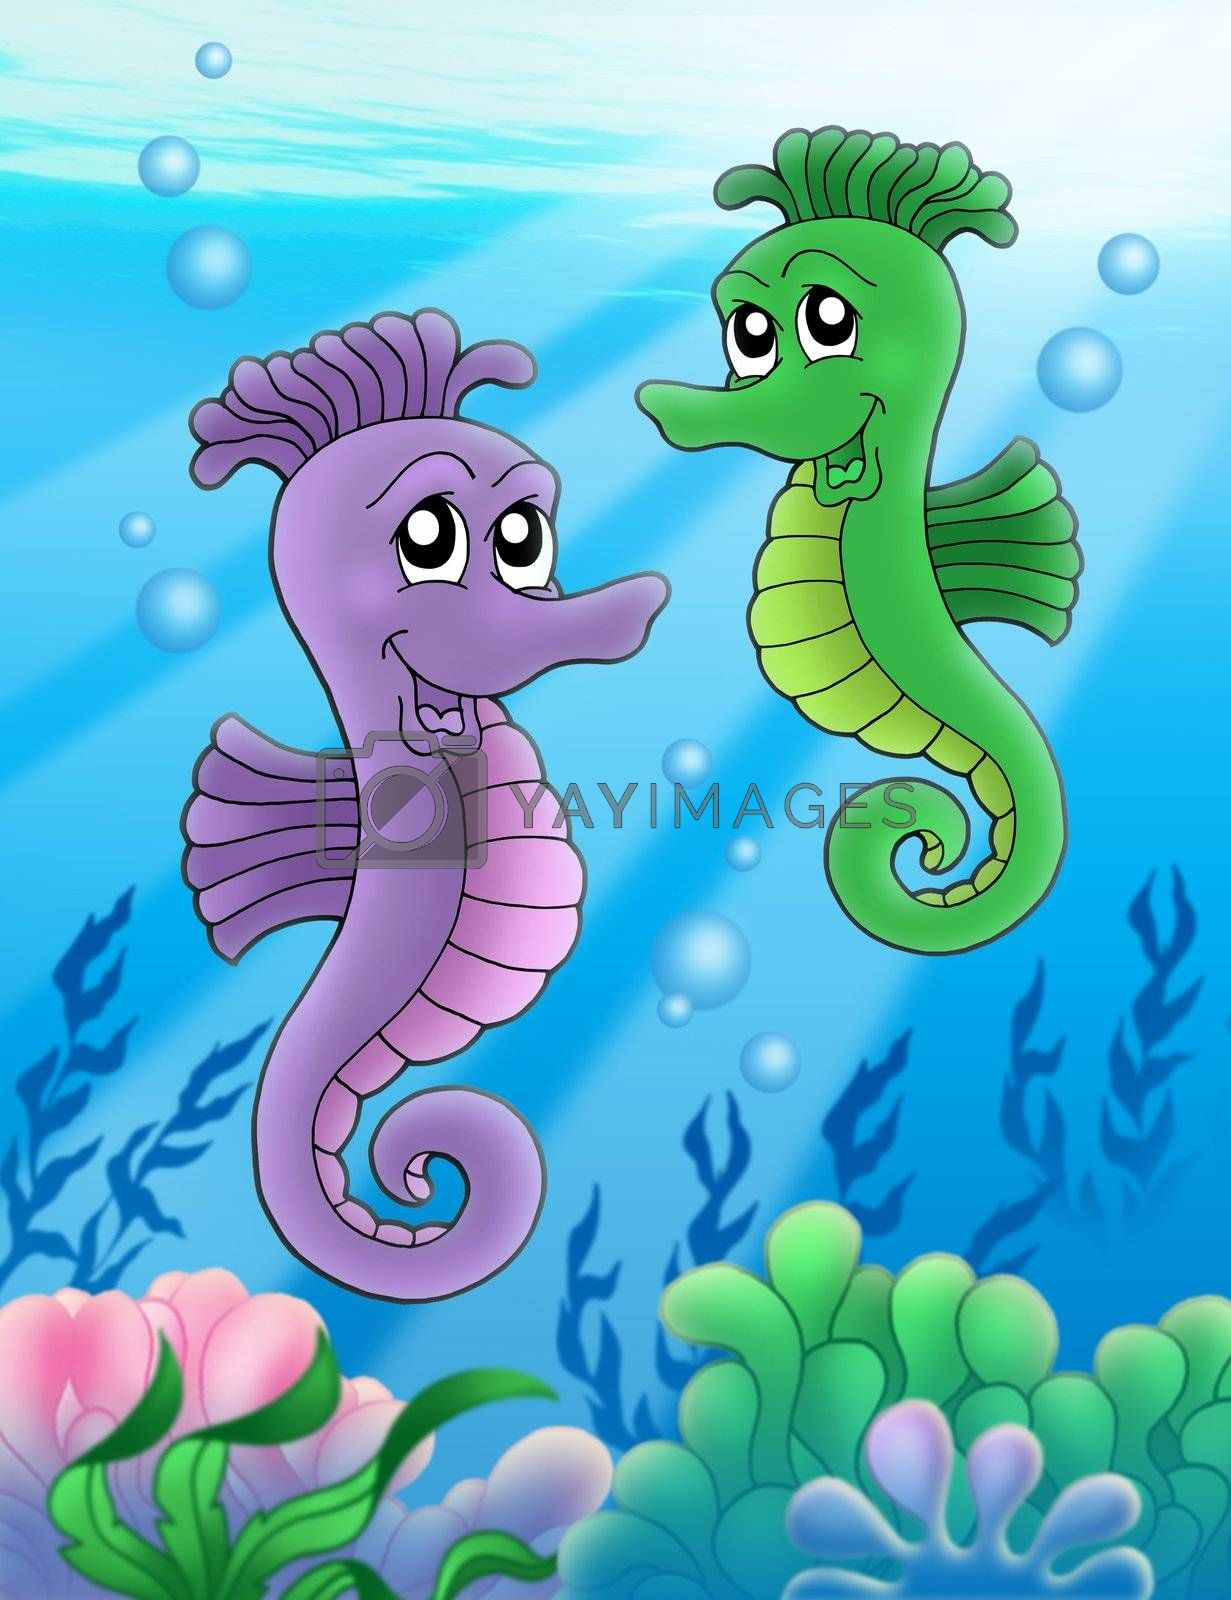 Pair of sea horses - color illustration.